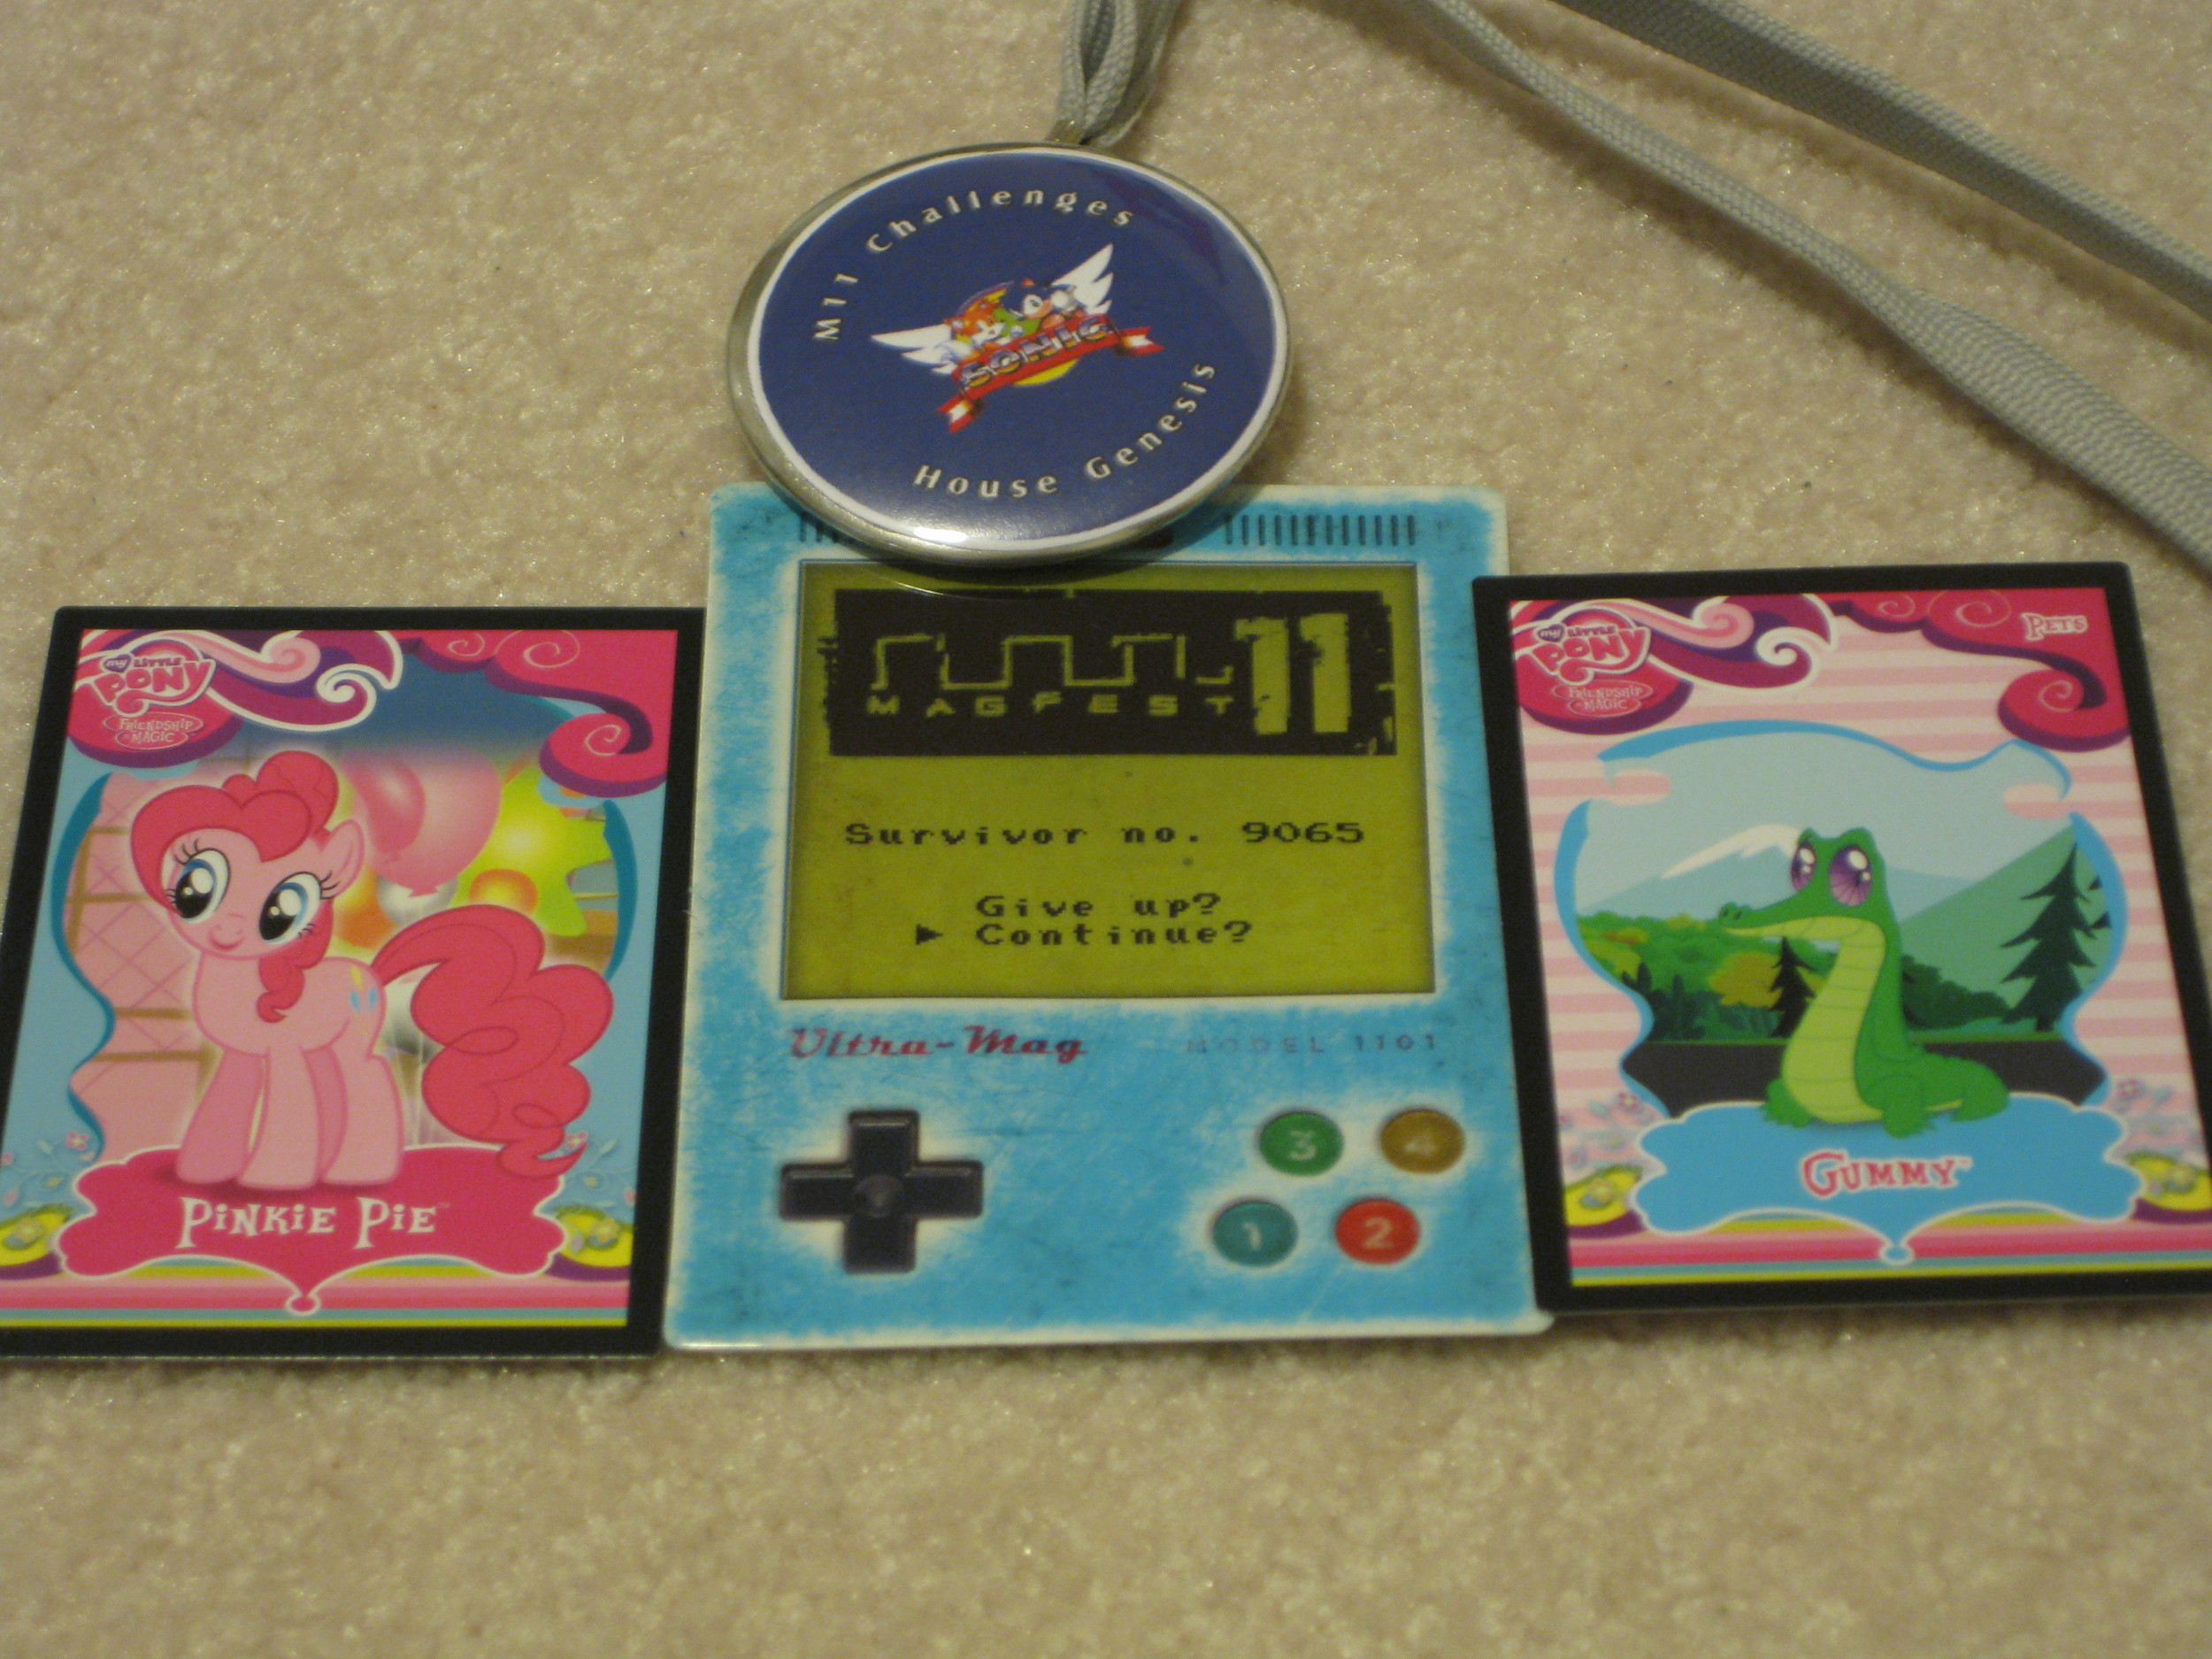 The badge, some MLP cards, and a Challenge spoil